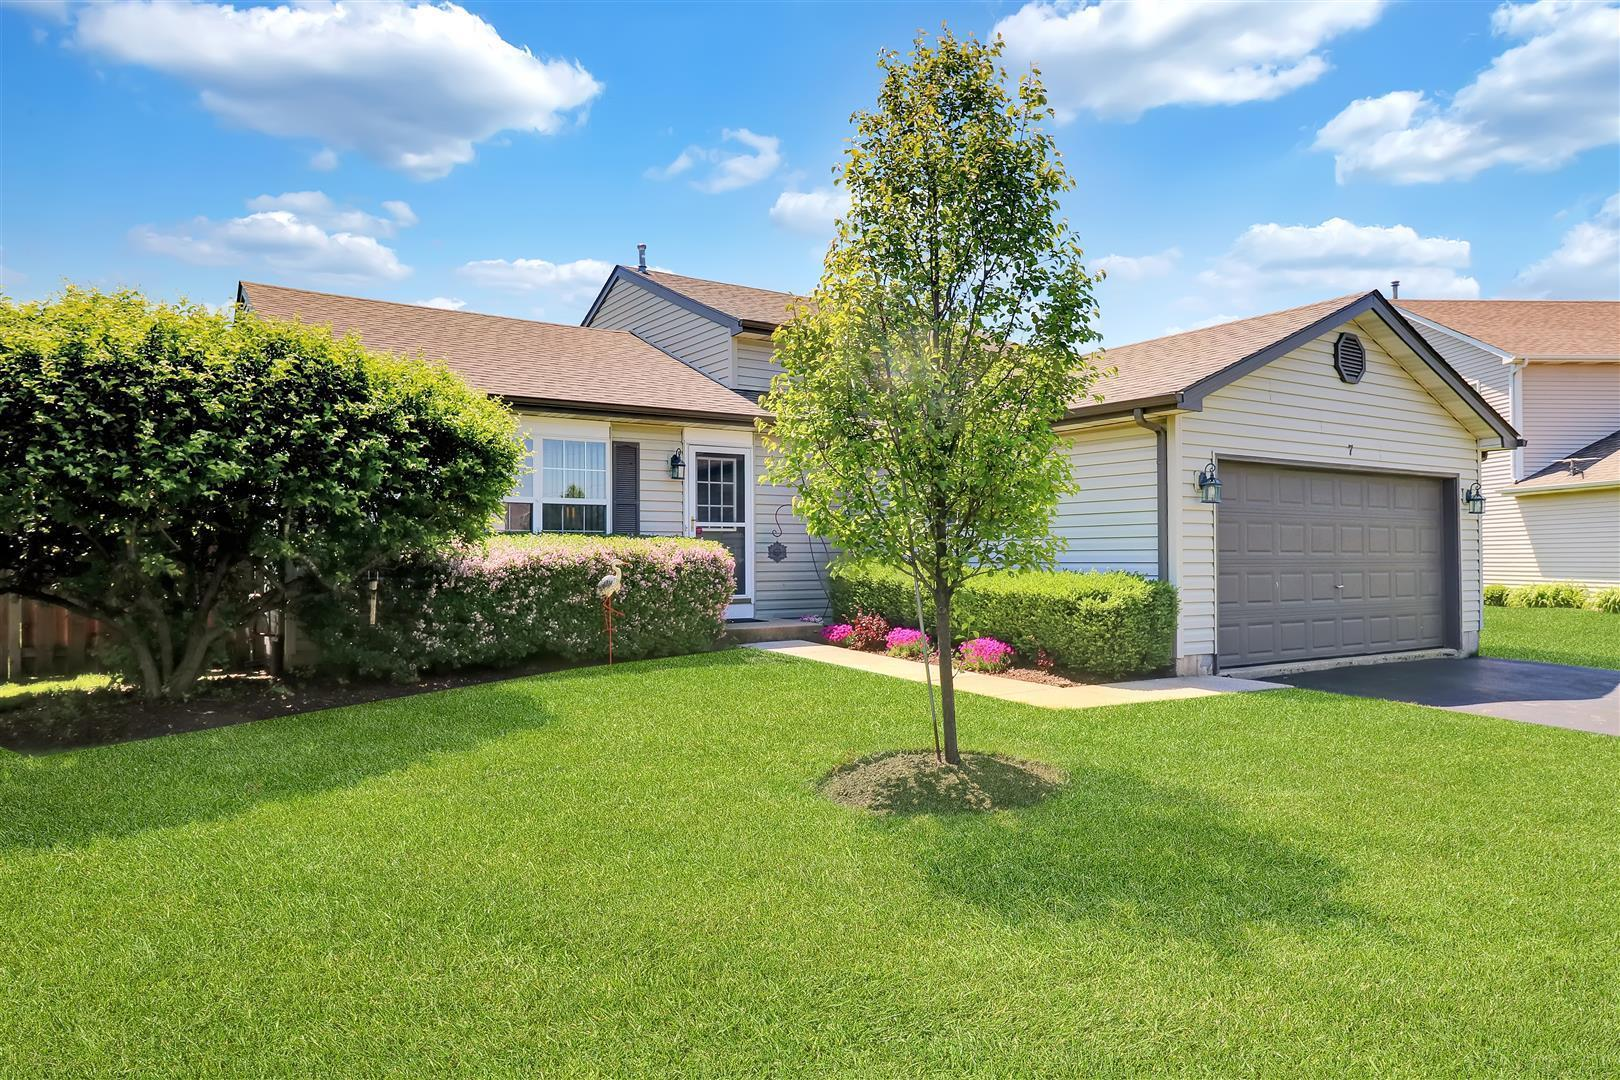 7 Asbury Court, Lake in the Hills, IL 60156 - #: 10735419